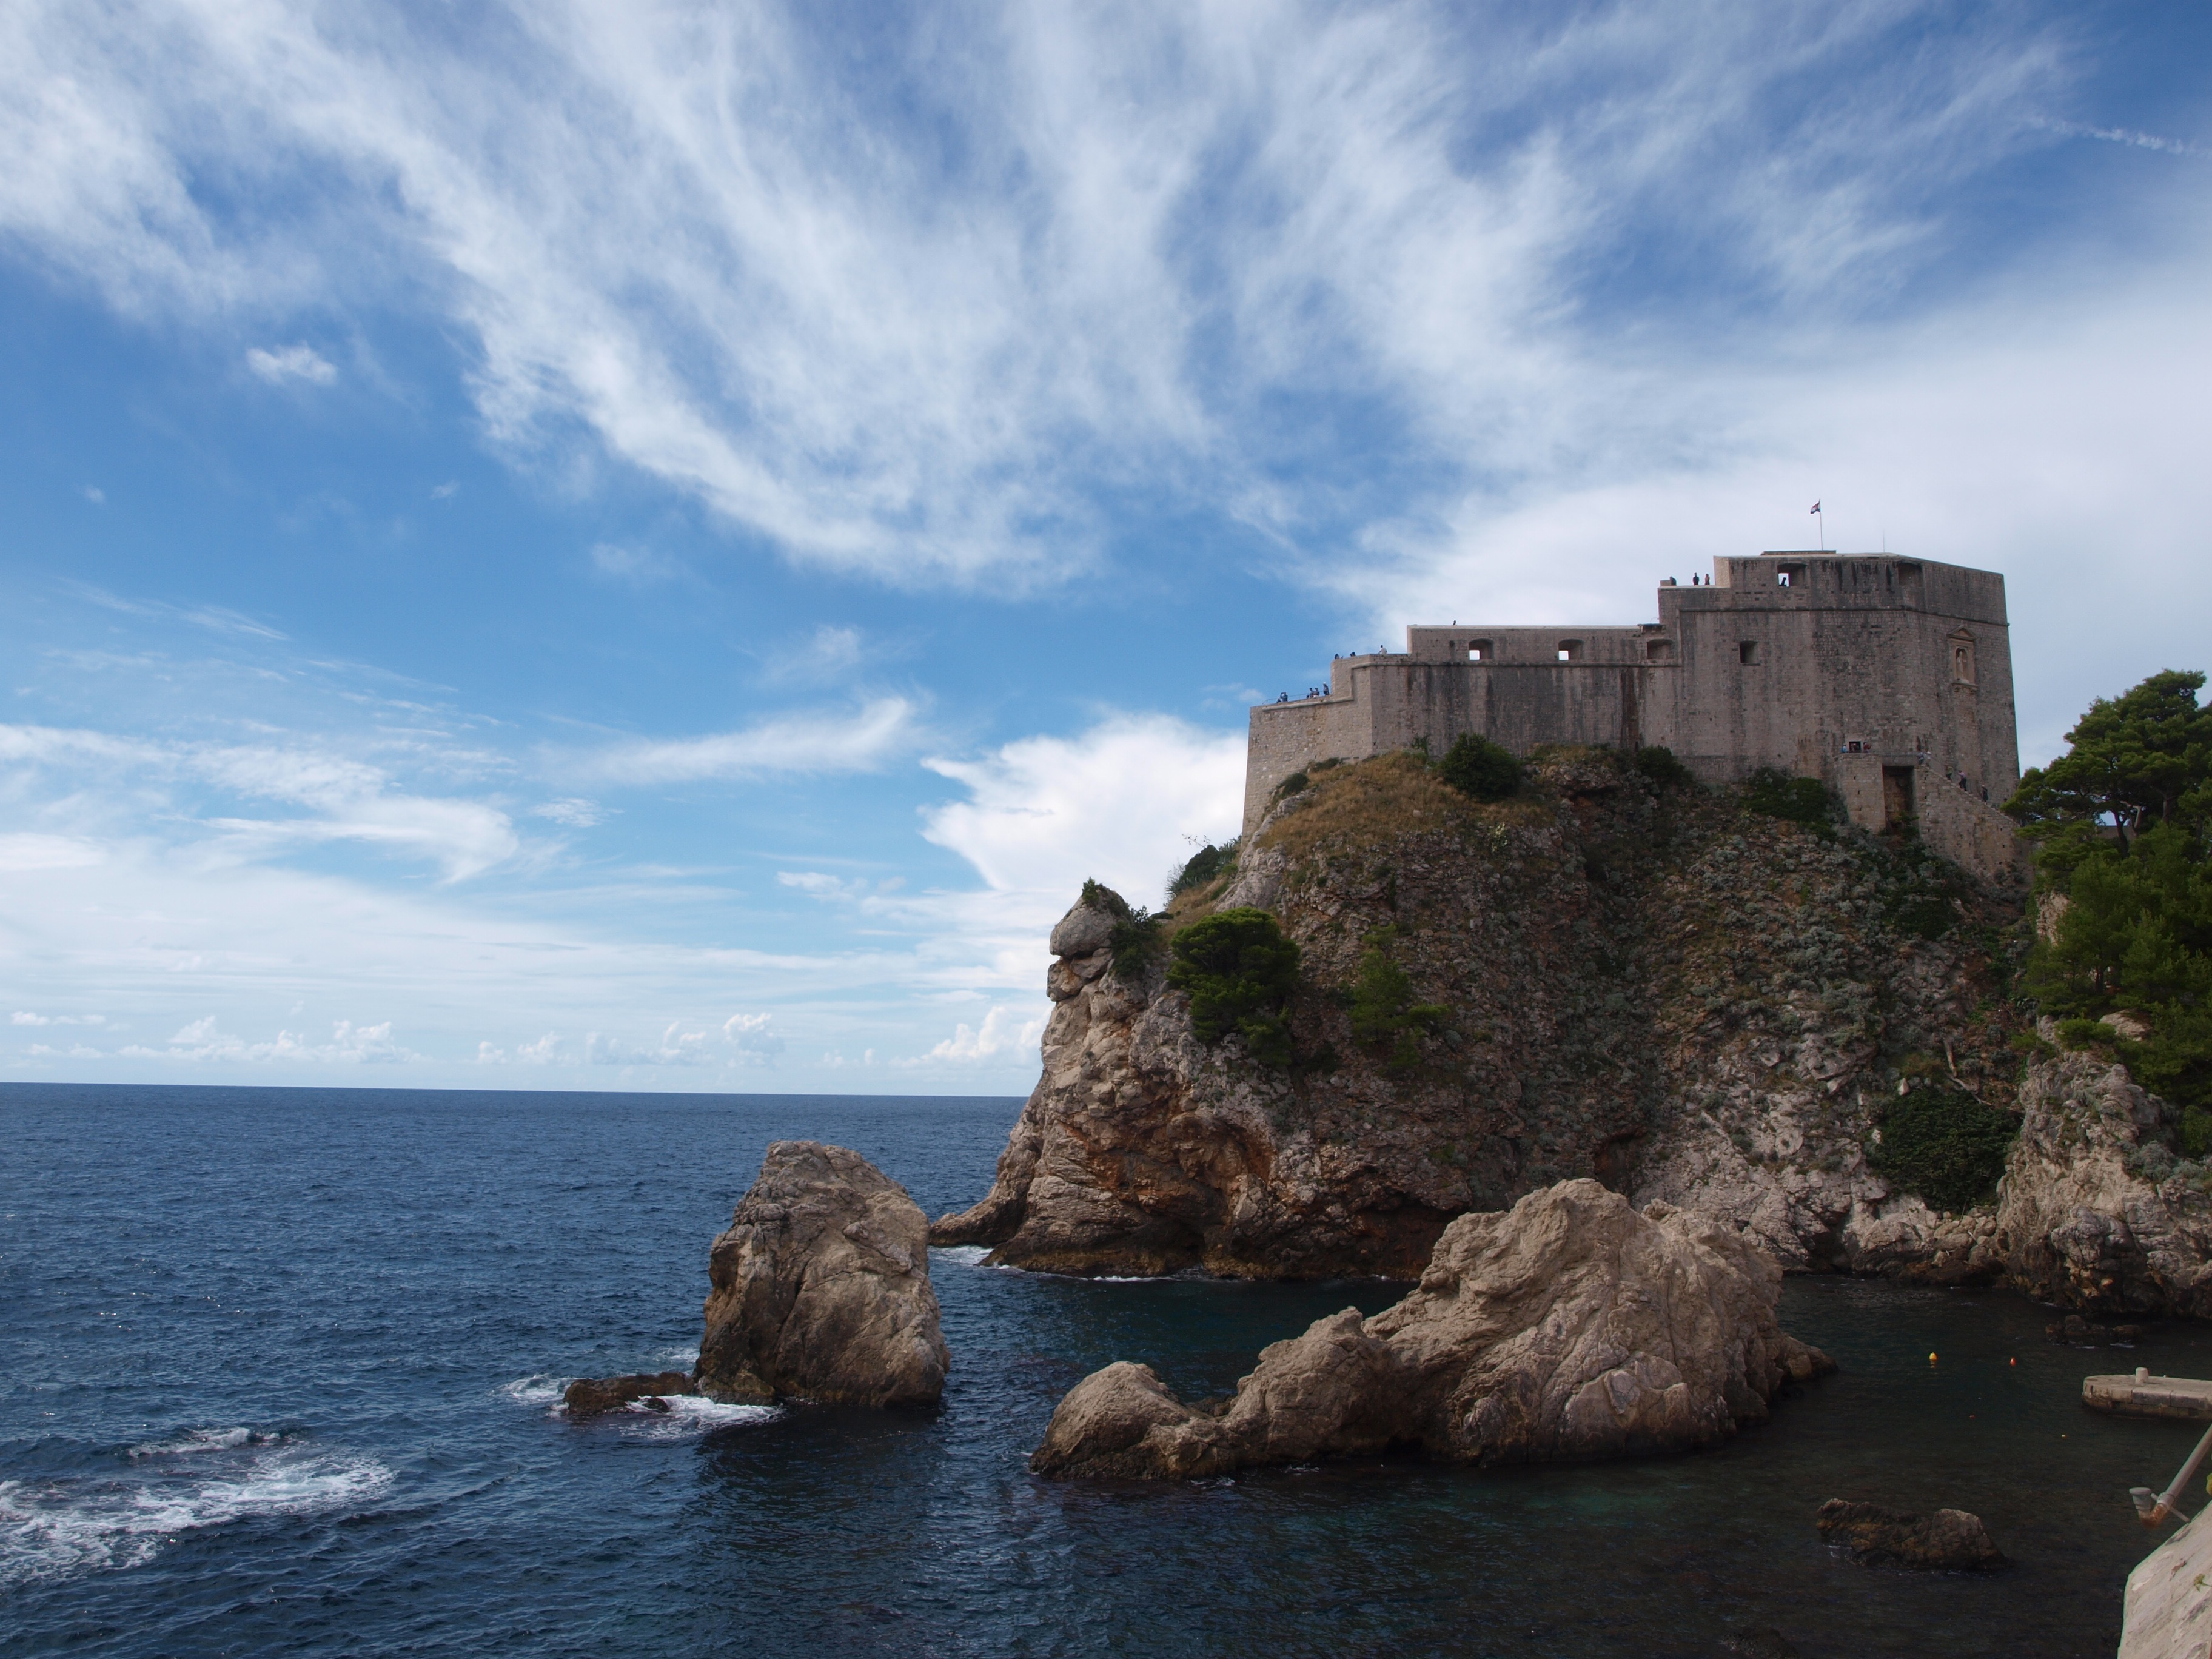 Photo of Lovrijenac Fortress, Dubrovnik, Croatia with blue and cloudy sky